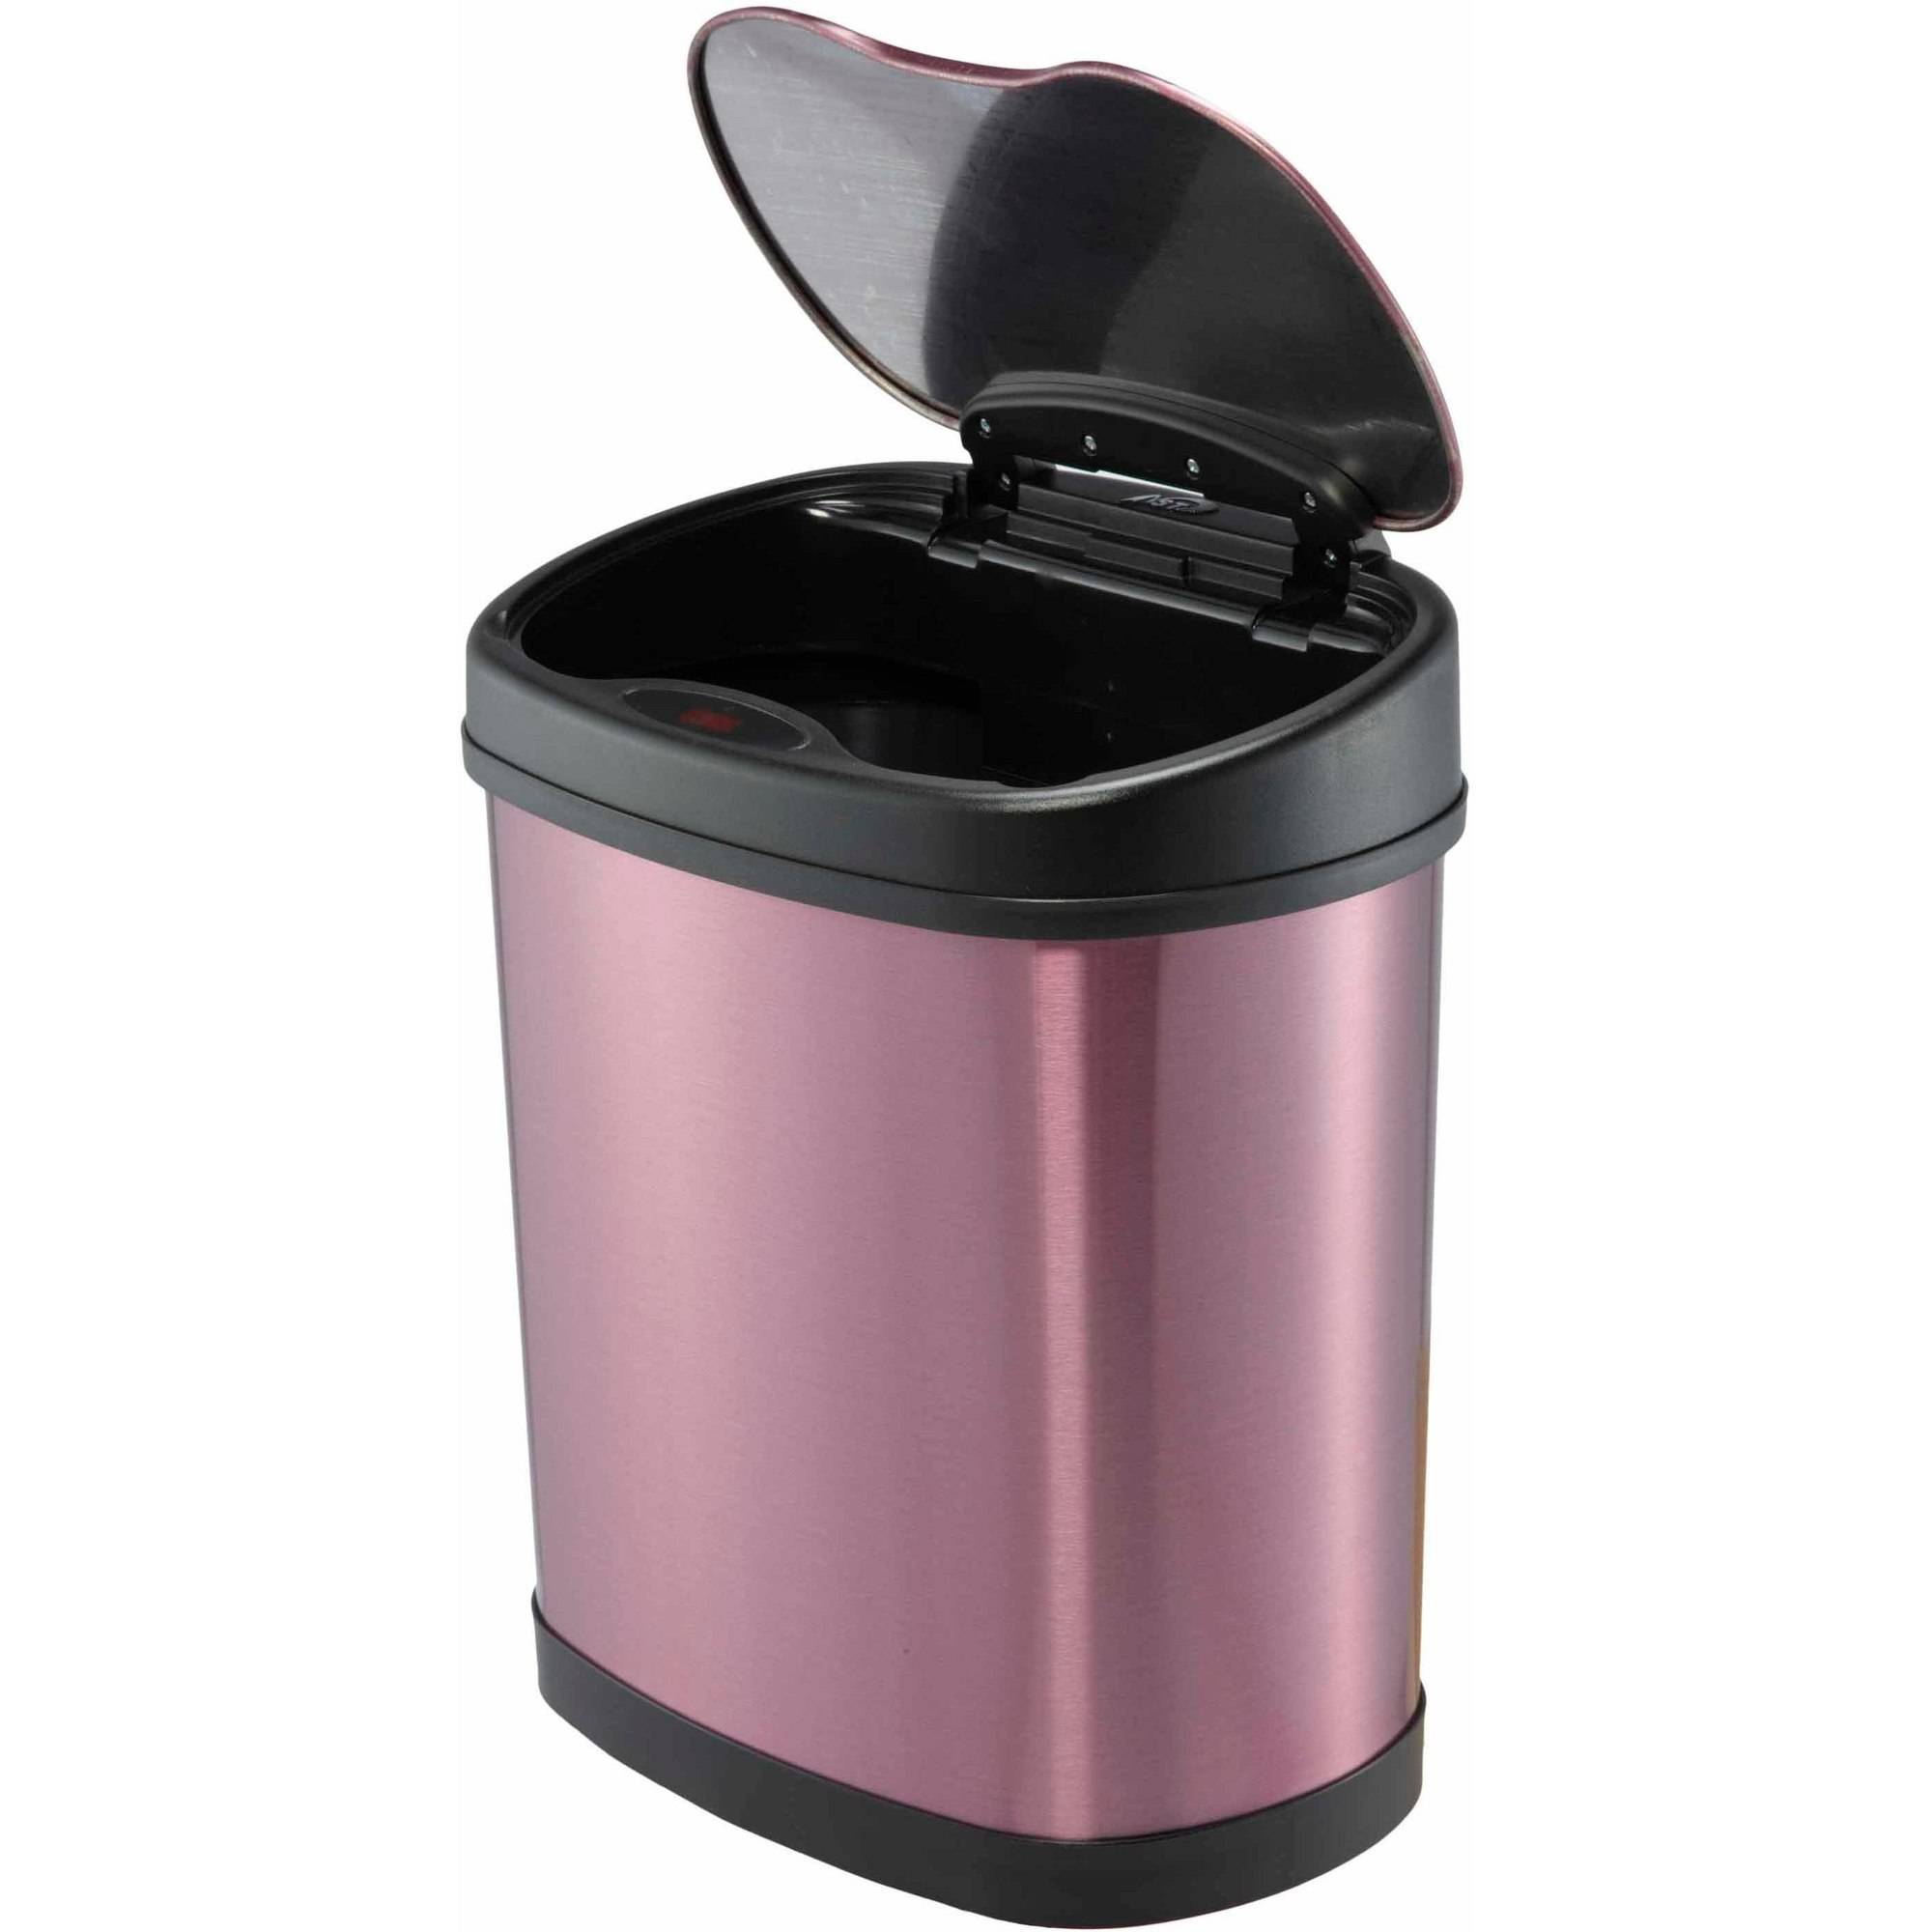 nine stars motion sensor 3 1 gallon trash can purple walmart